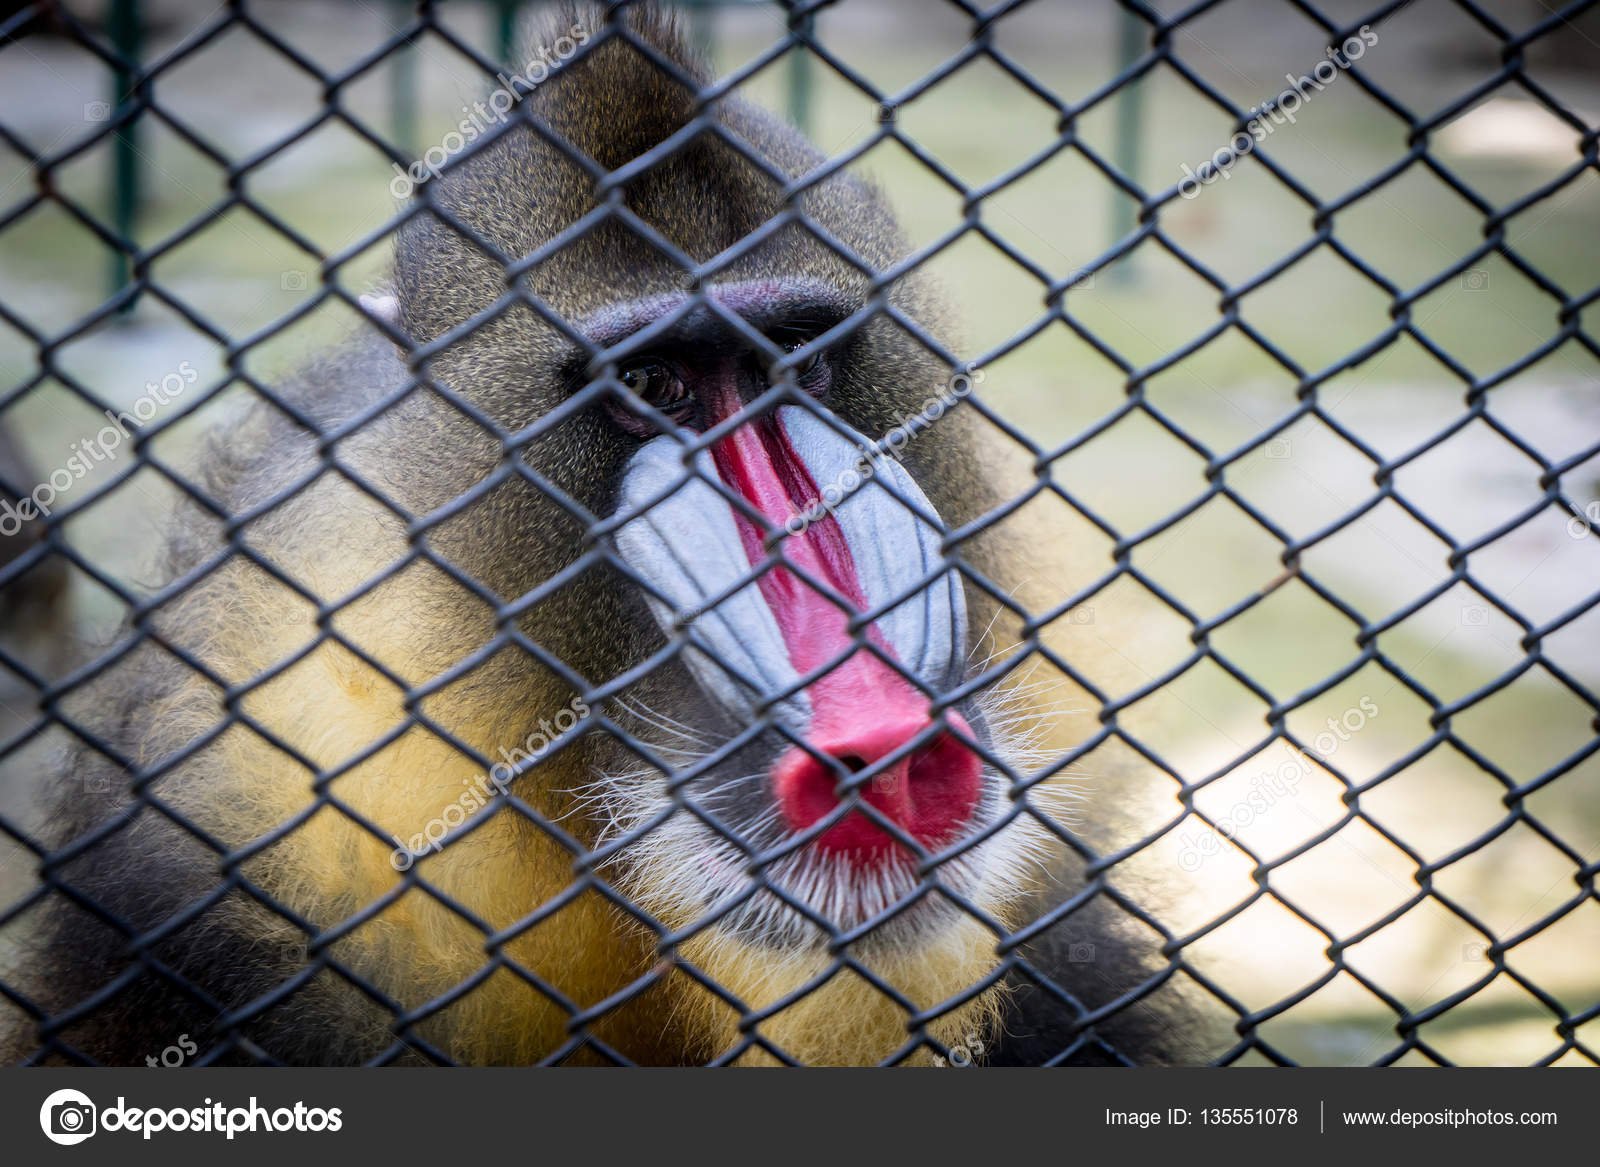 Image result for baboon in cage